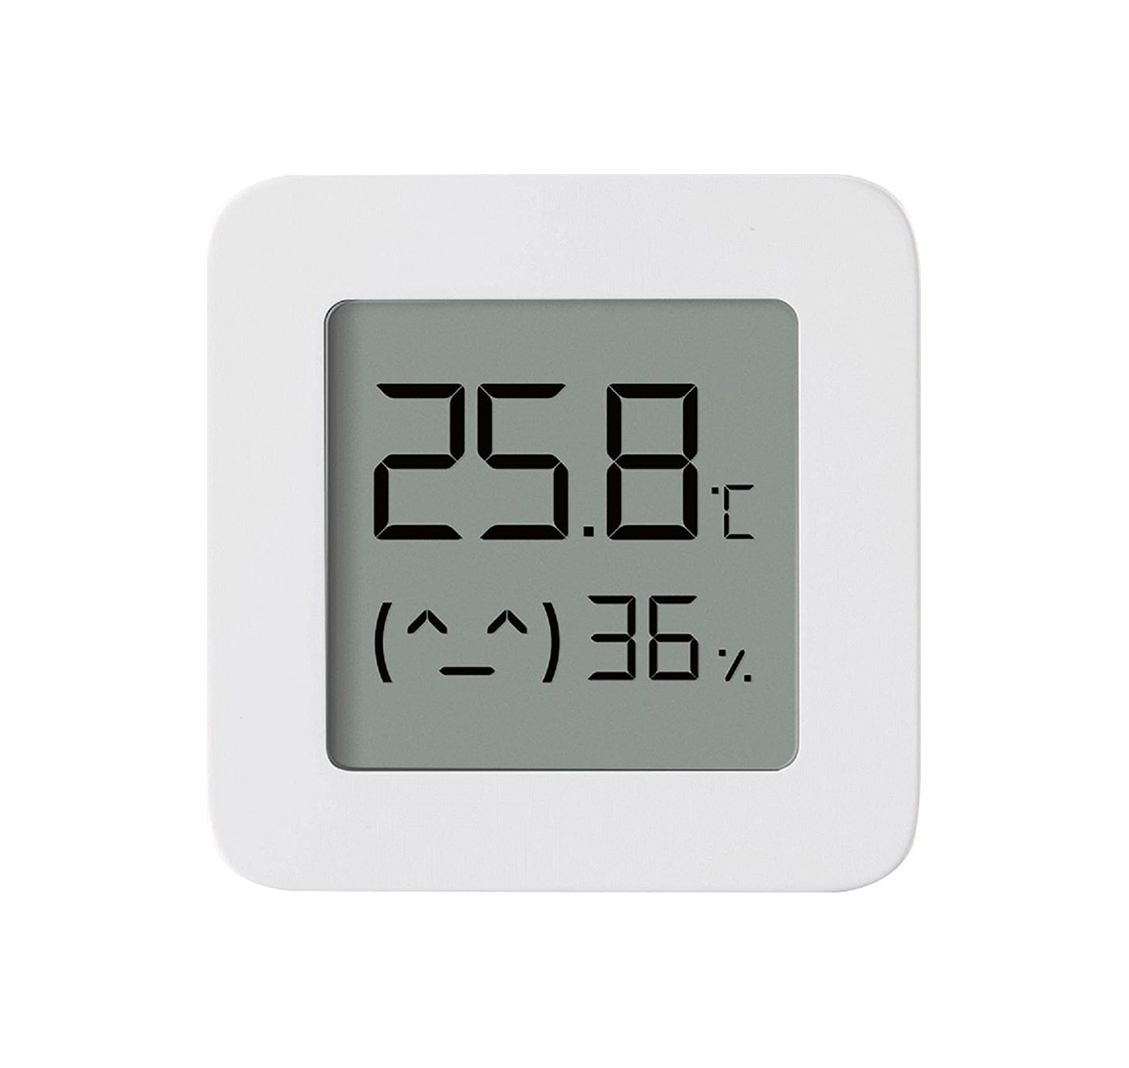 Xiaomi Mi Temperature And Humidity Monitor 2 NUN4126GL (2 χρόνια εγγύηση)